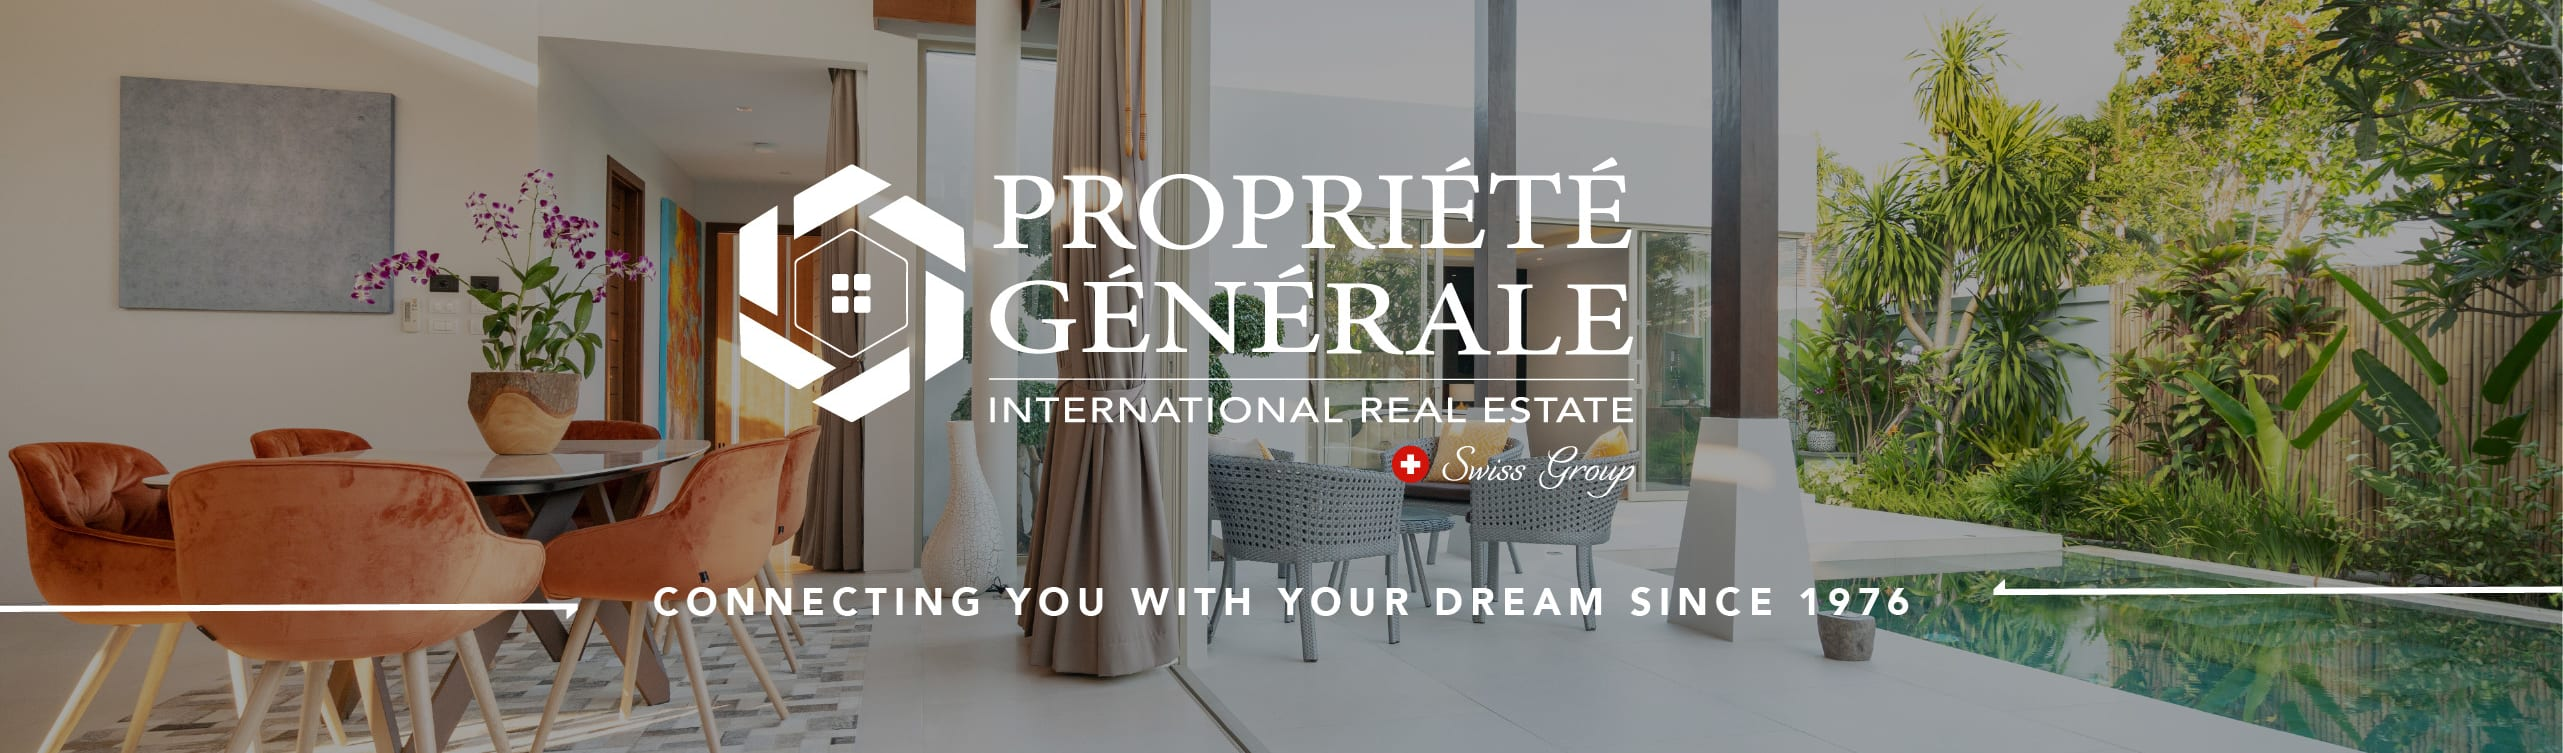 Propriété Générale International Real Estate